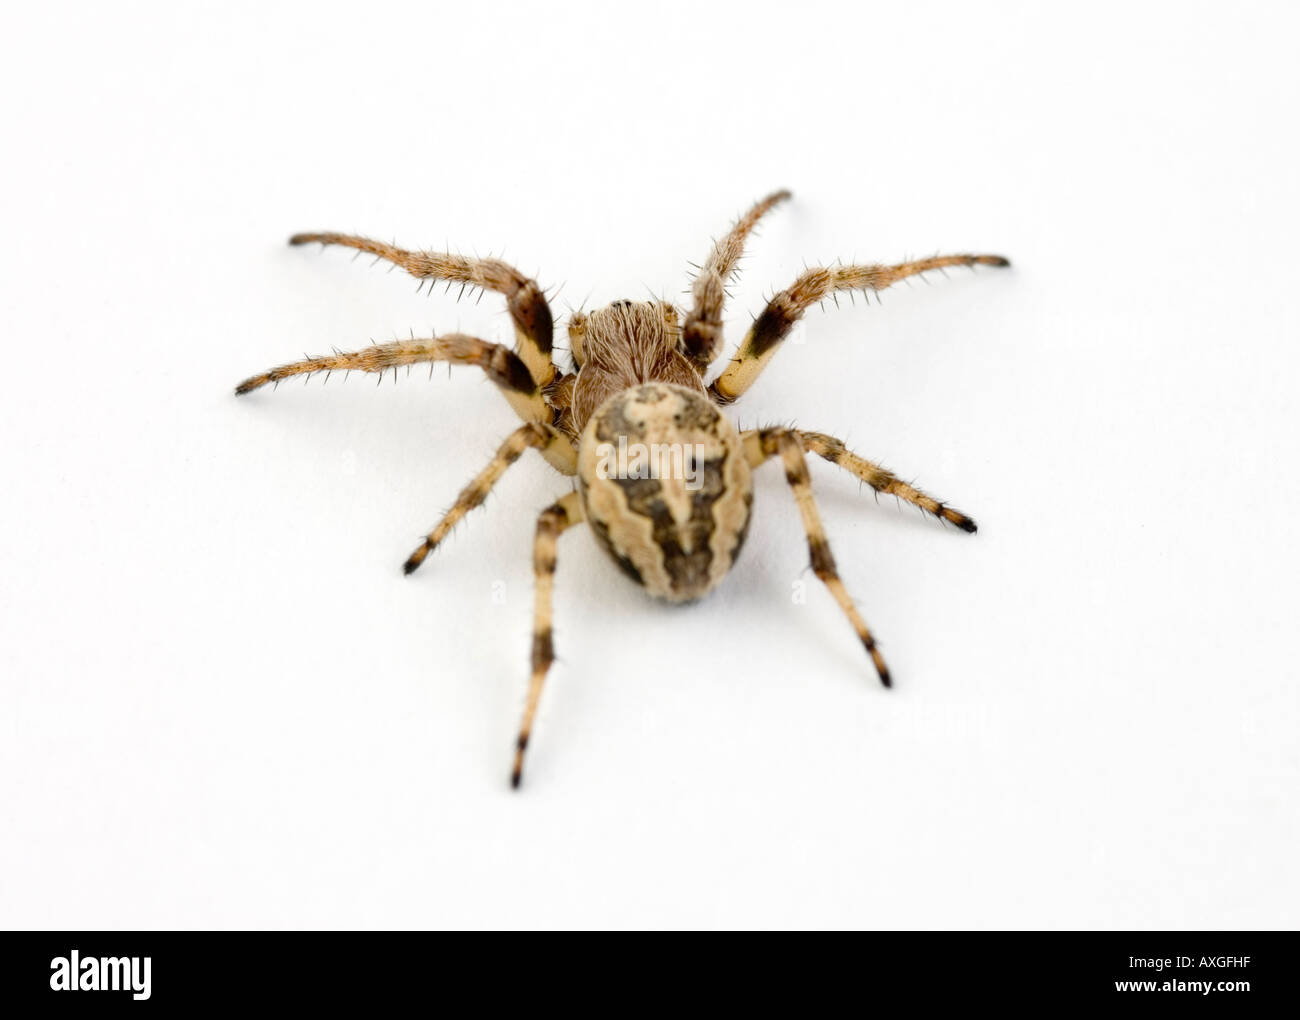 walnut orb-weaver spider - Stock Image